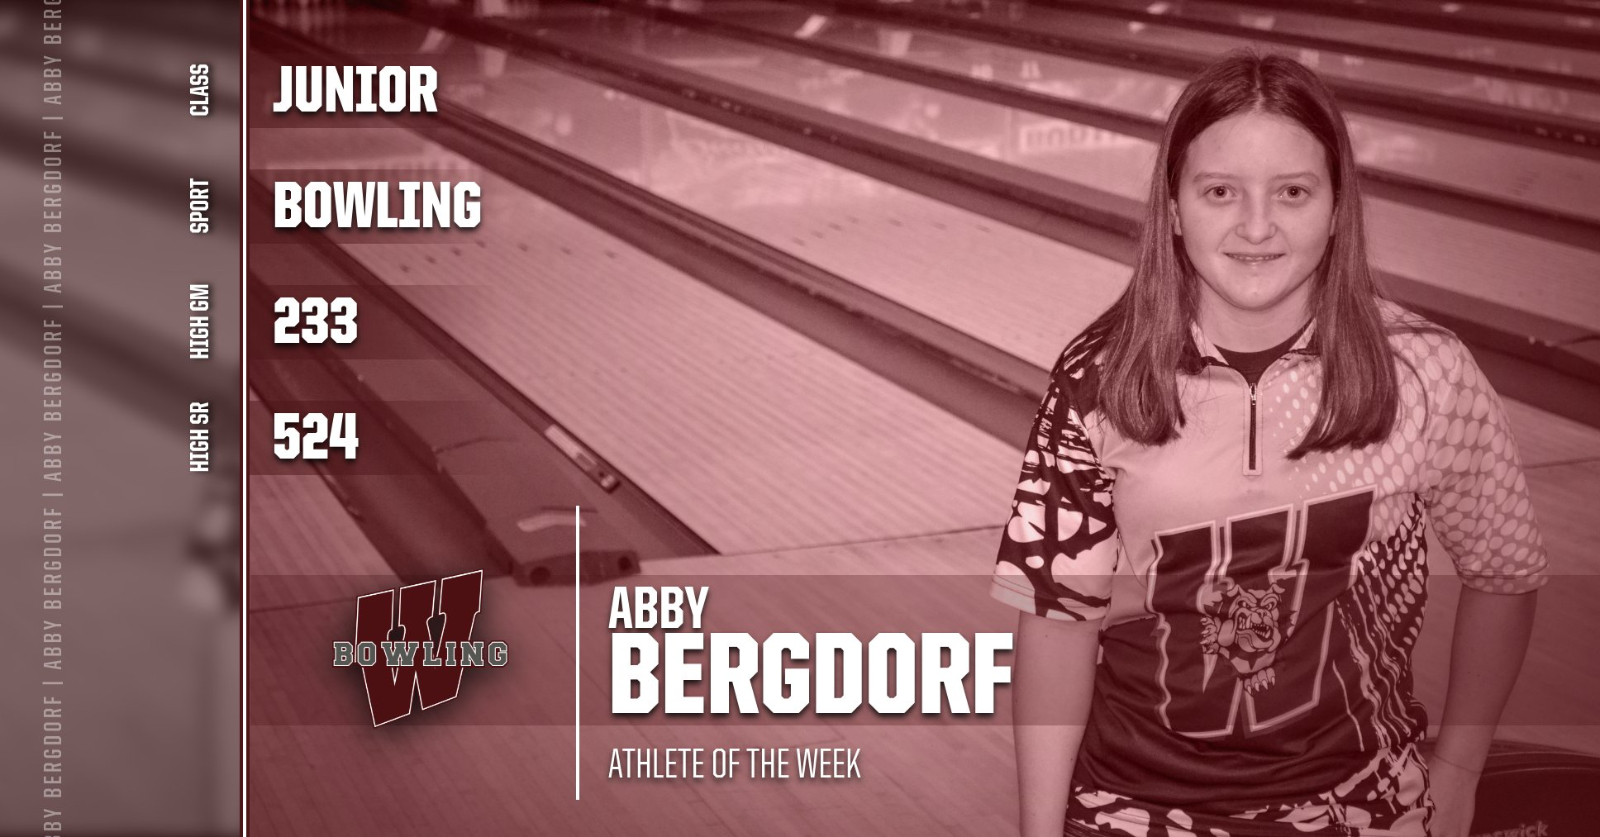 Student Athlete of the Week- Abby Bergdorf